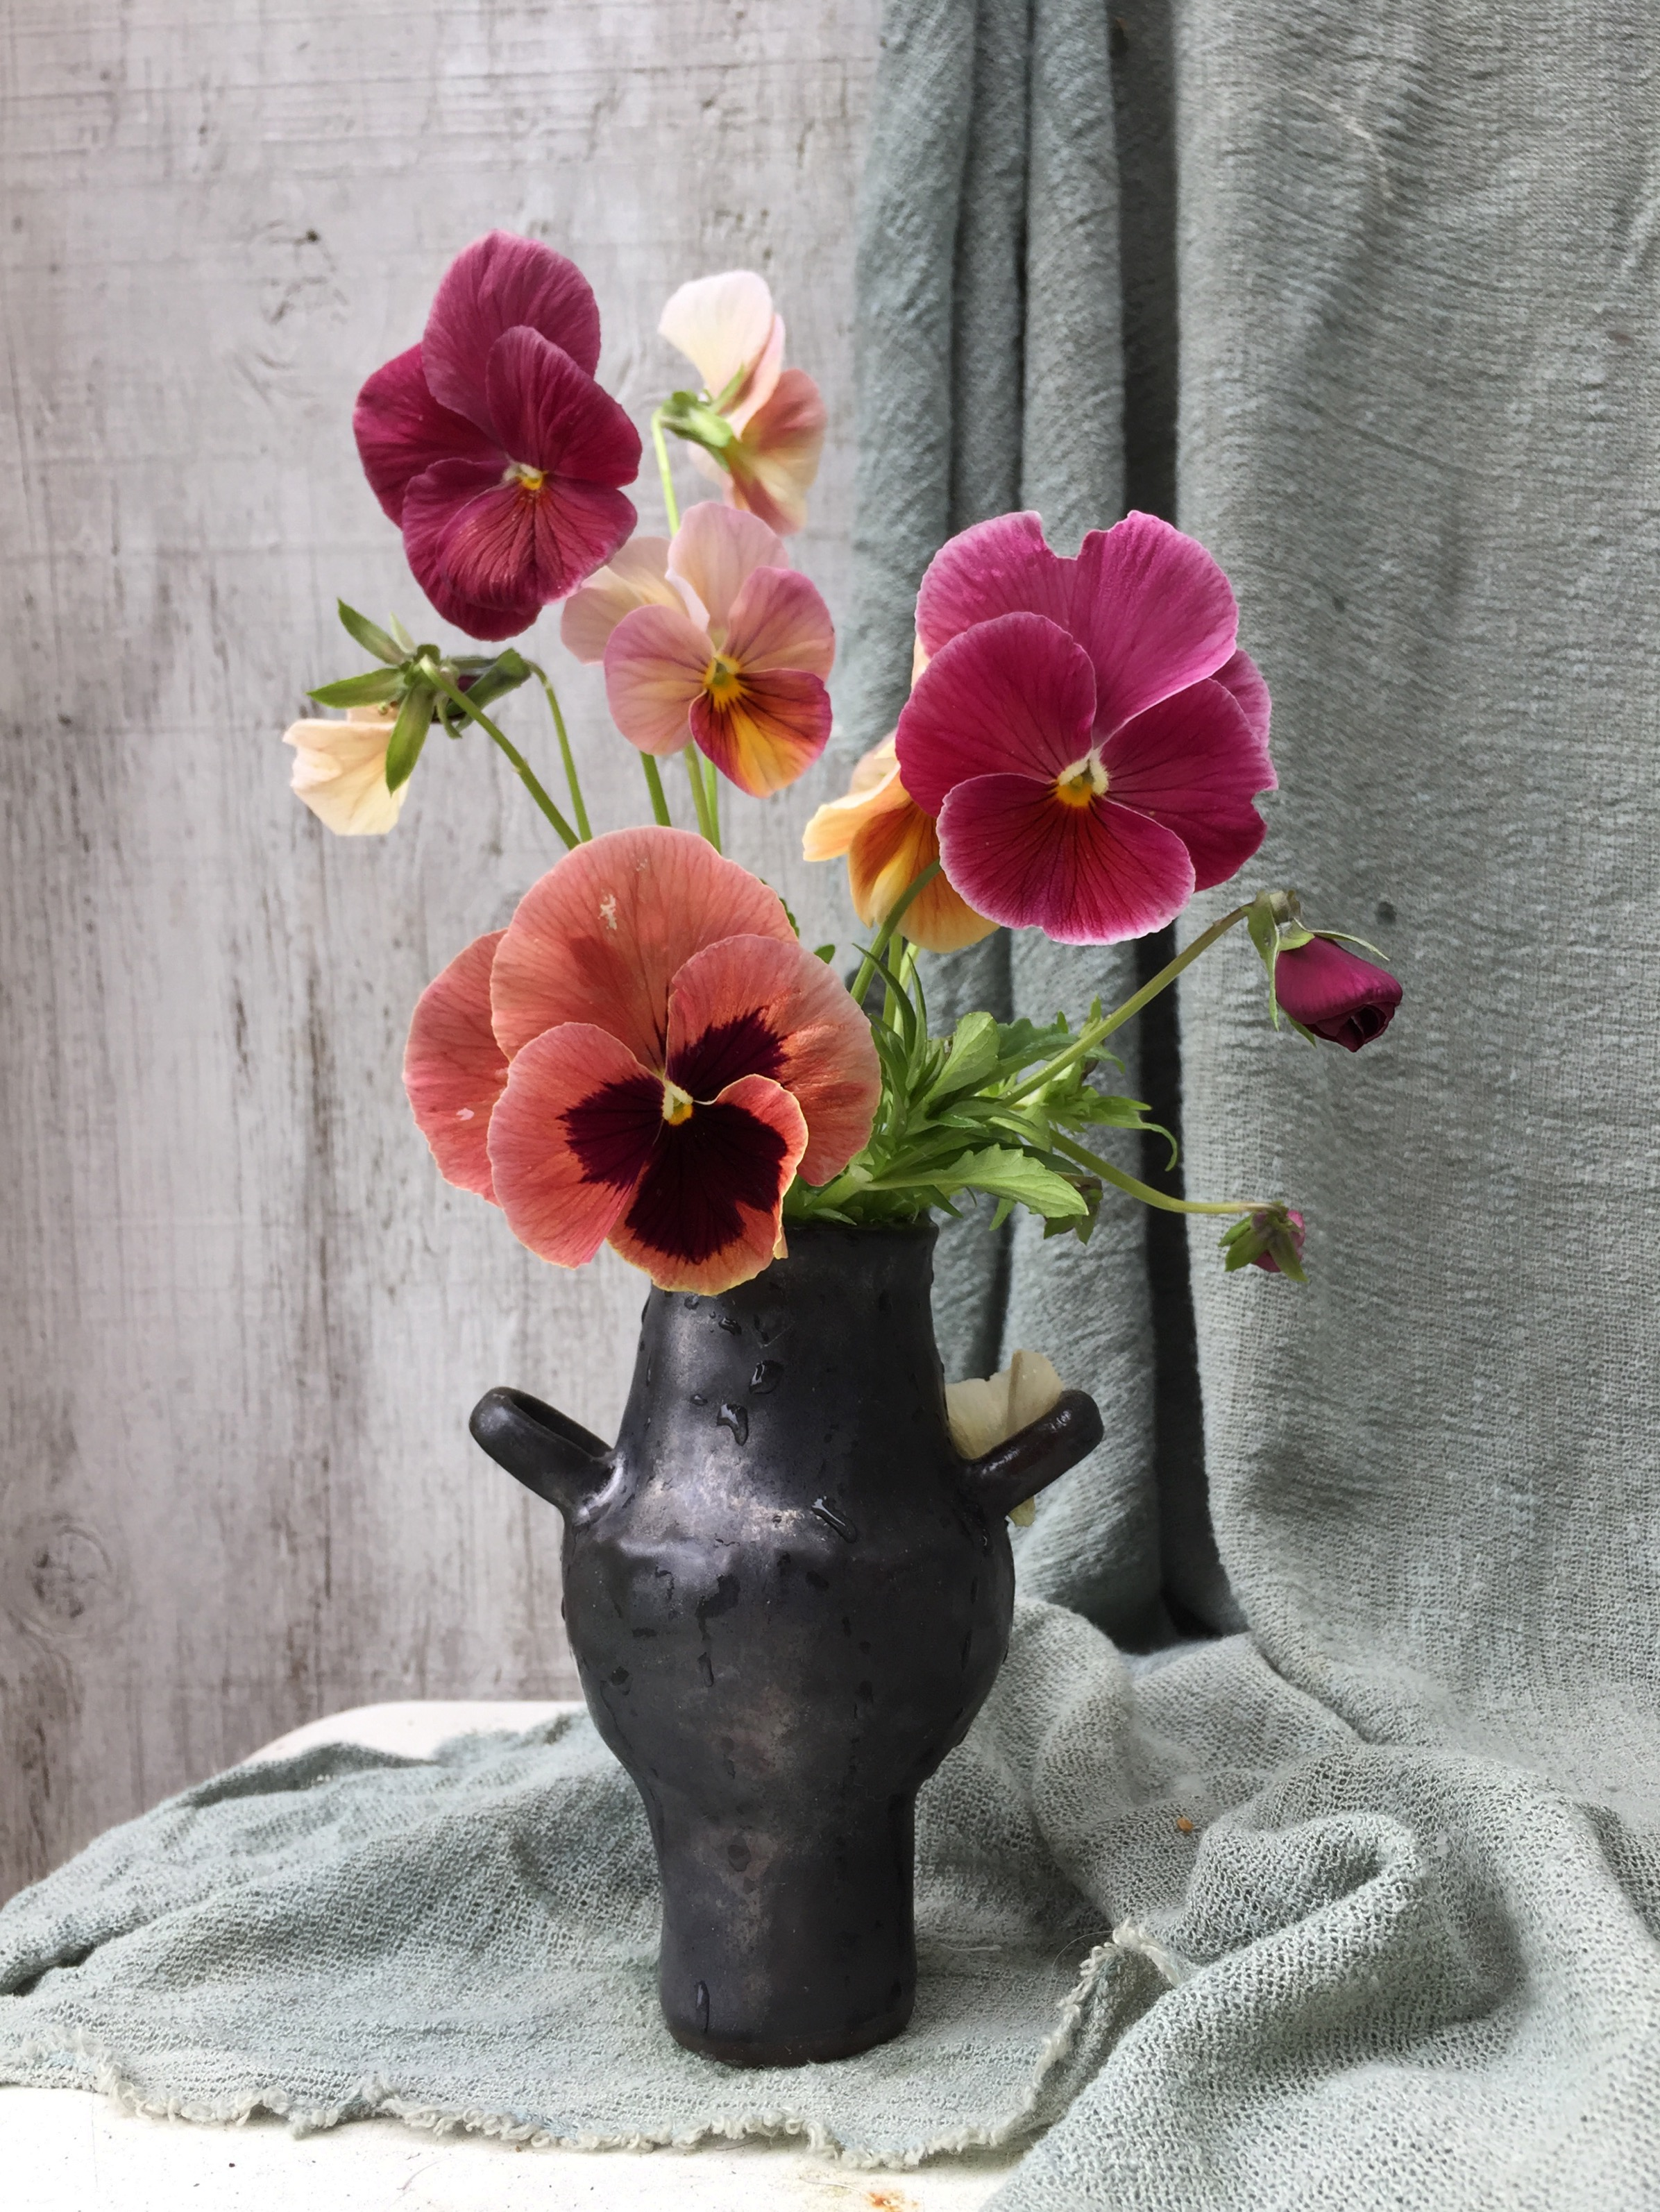 Pansies in a Wet Vessel